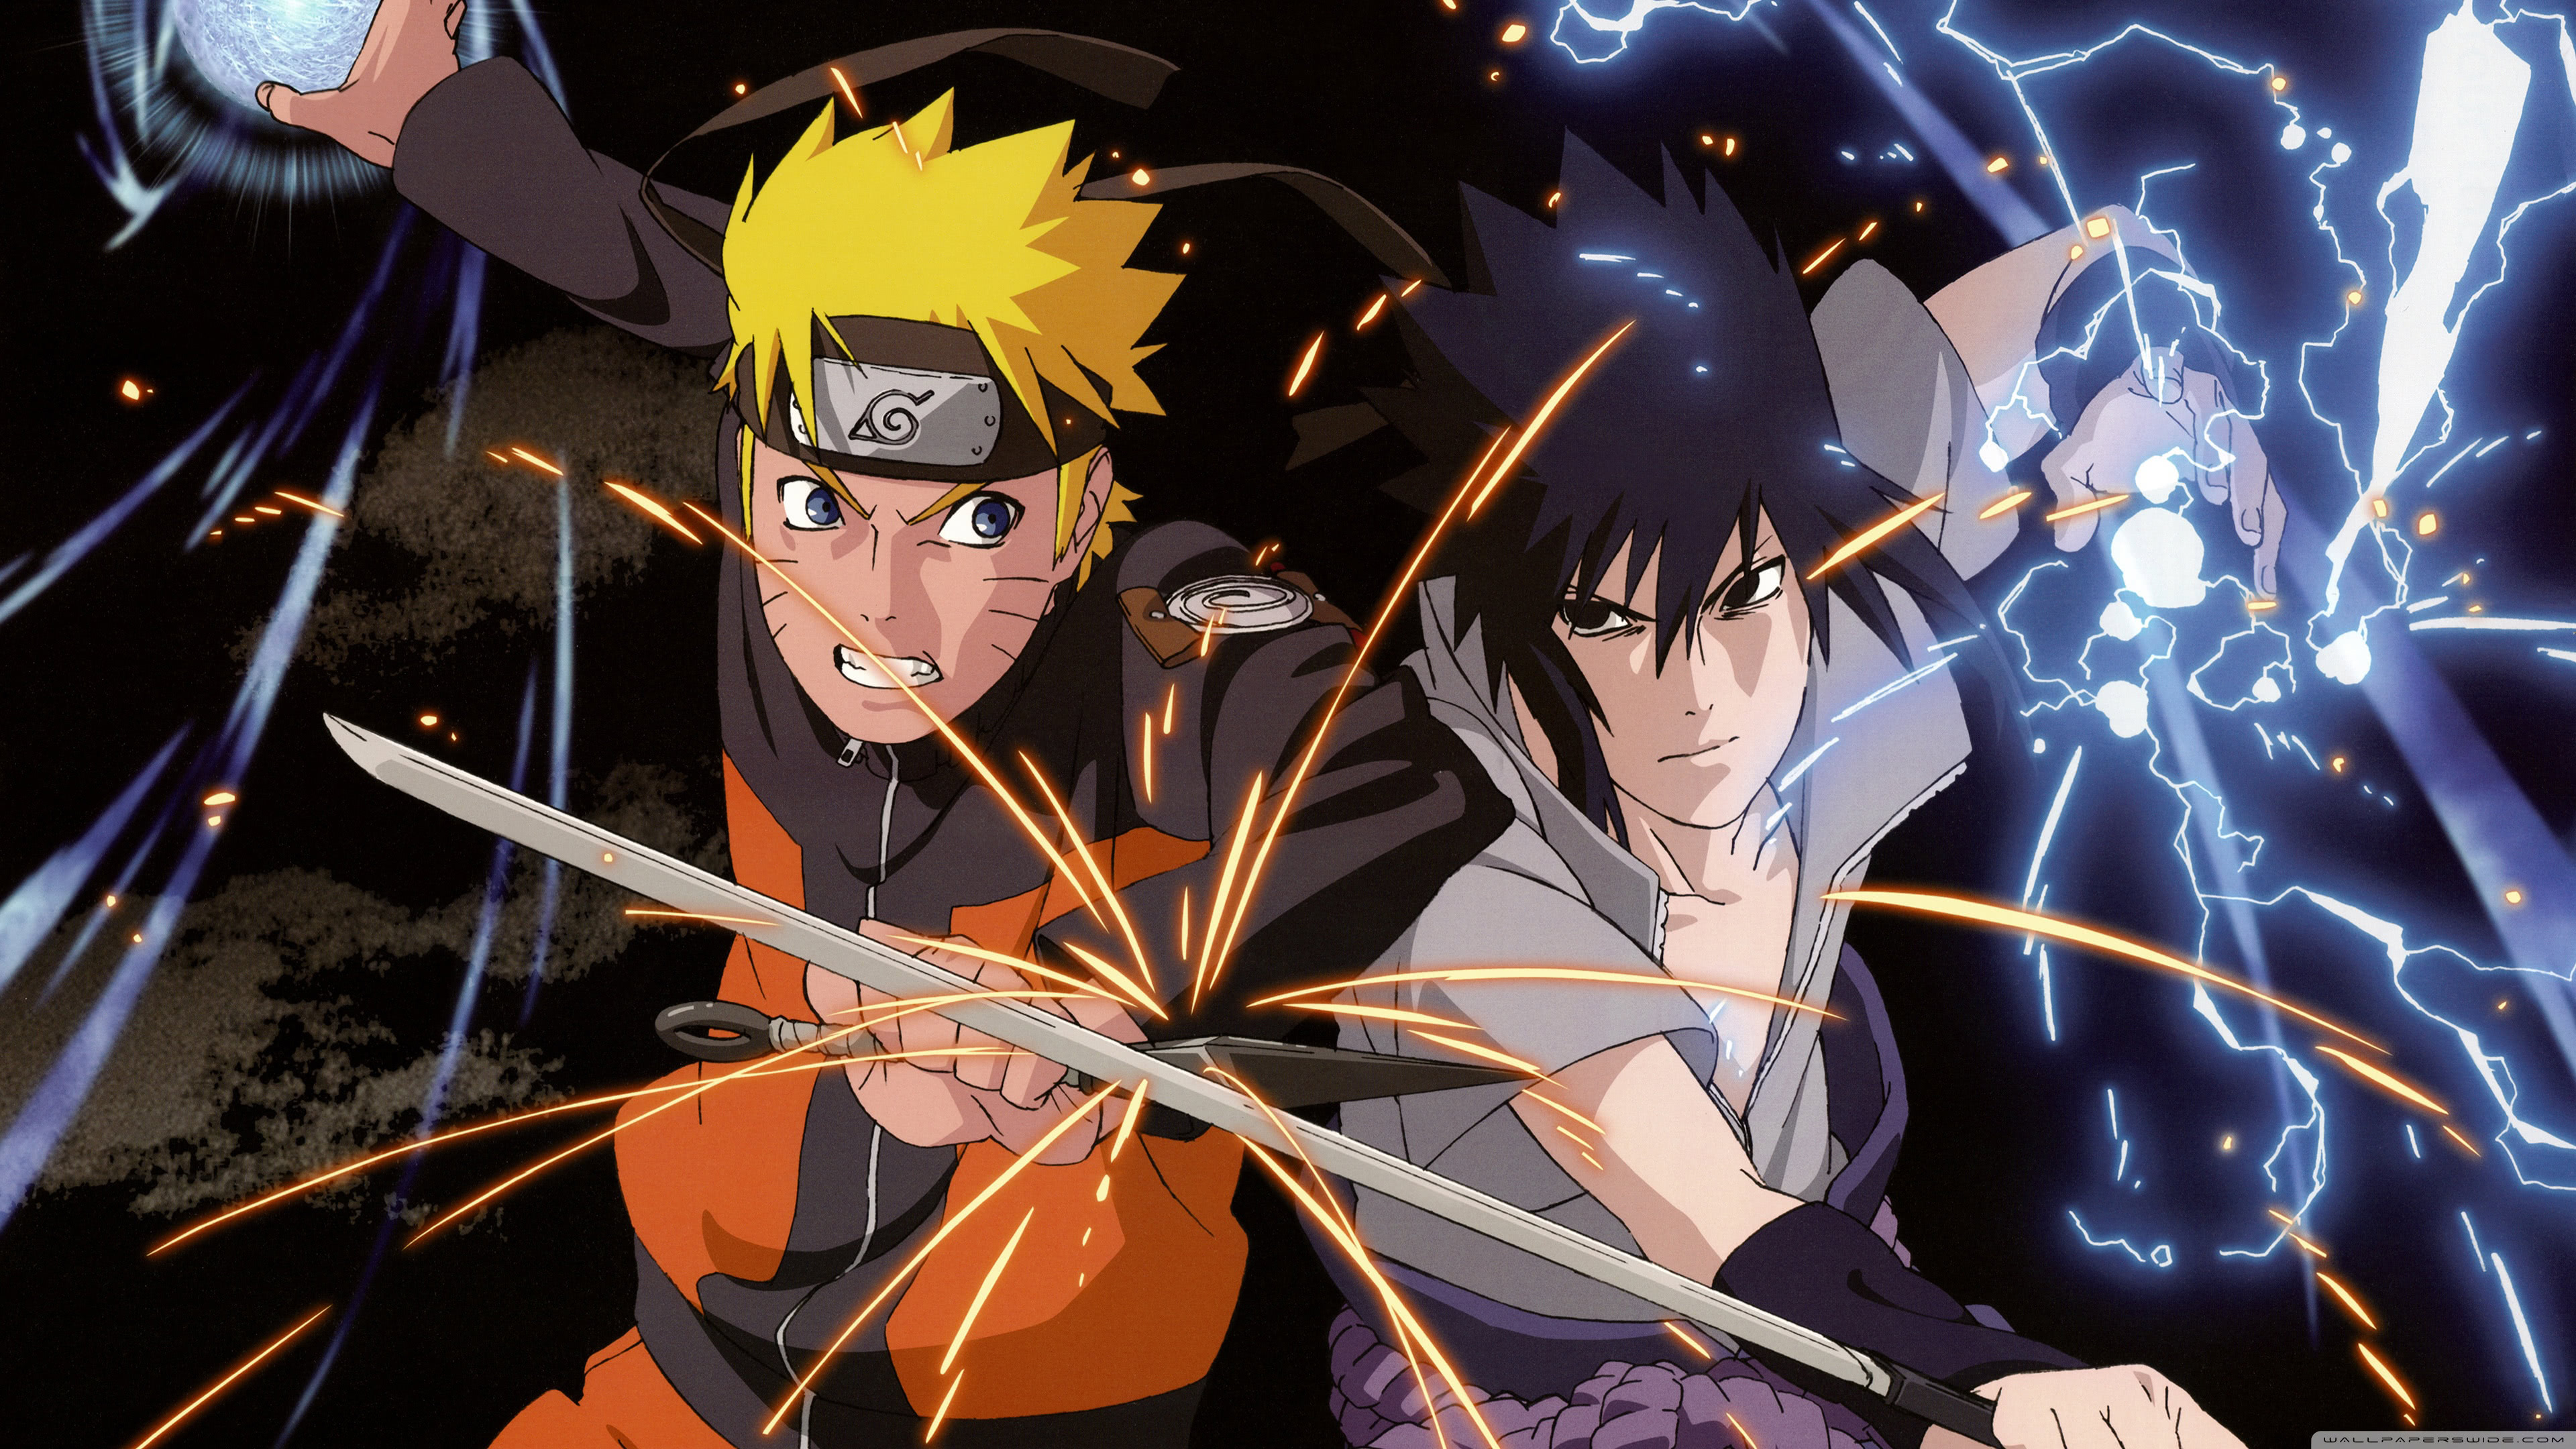 naruto vs sasuke uhd 4k wallpaper